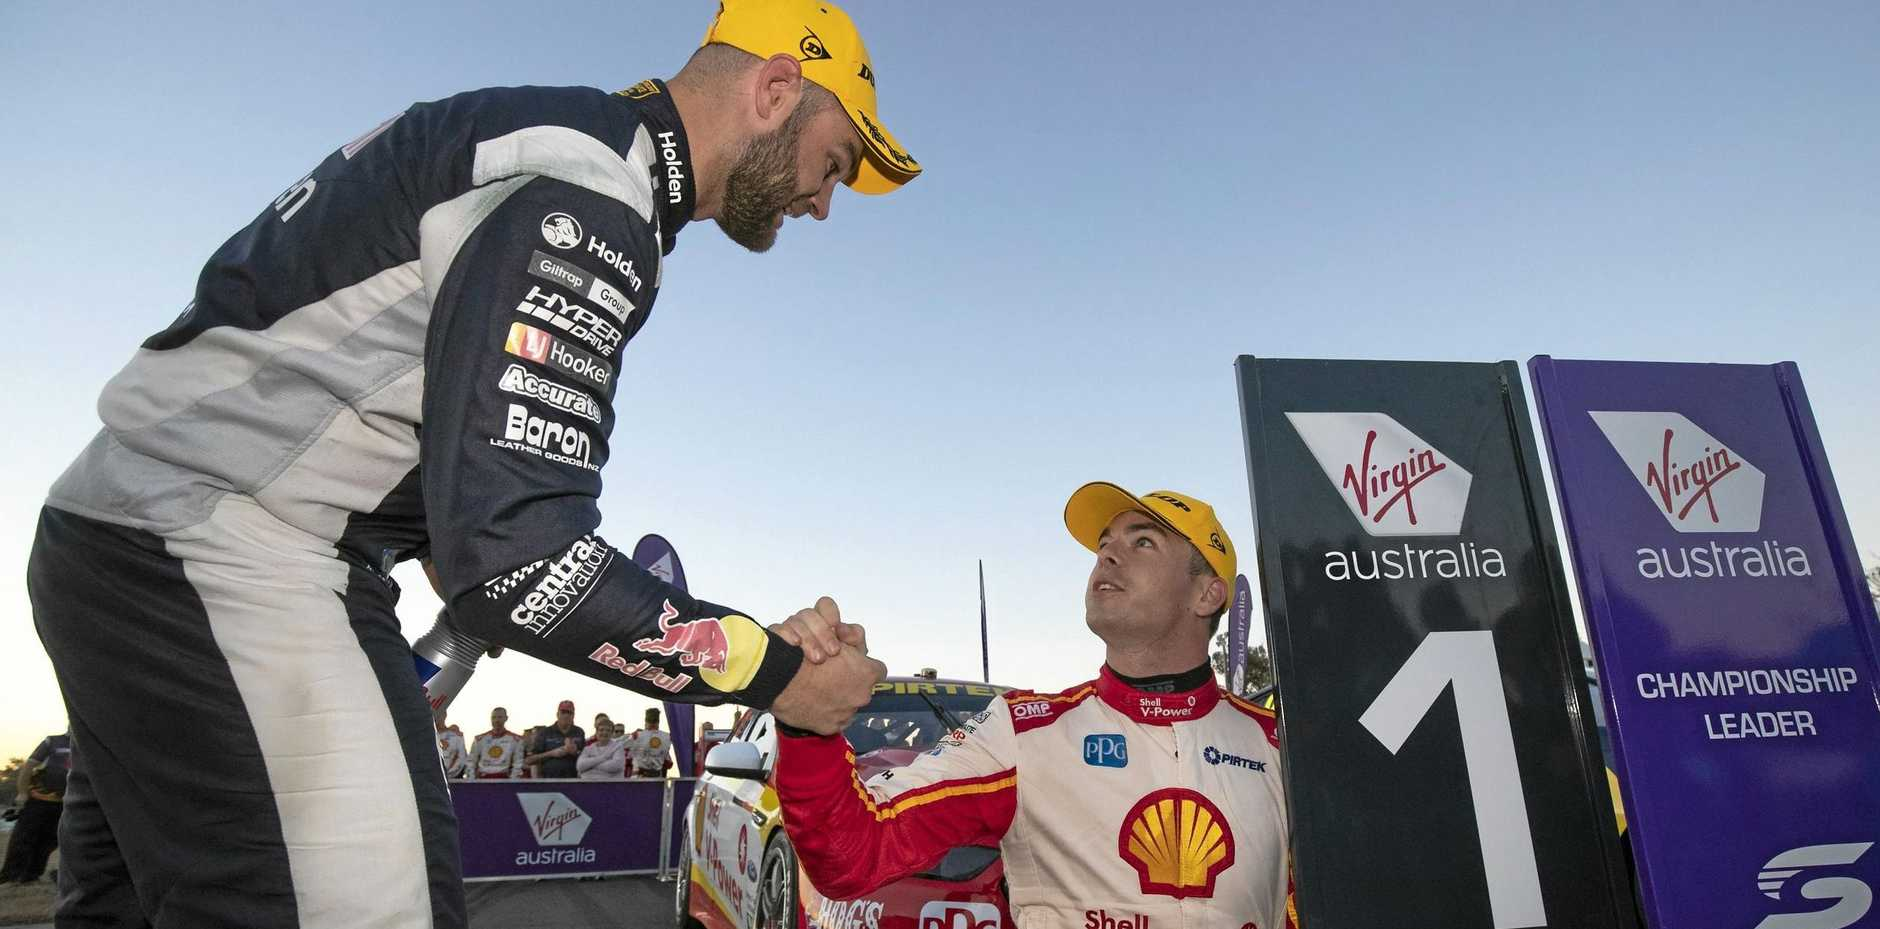 Shane van Gisbergen congratulates championship leader Scott McLaughlin after he won Saturday's race 19, the first in the latest Ipswich SuperSprint series at Queensland Raceway.